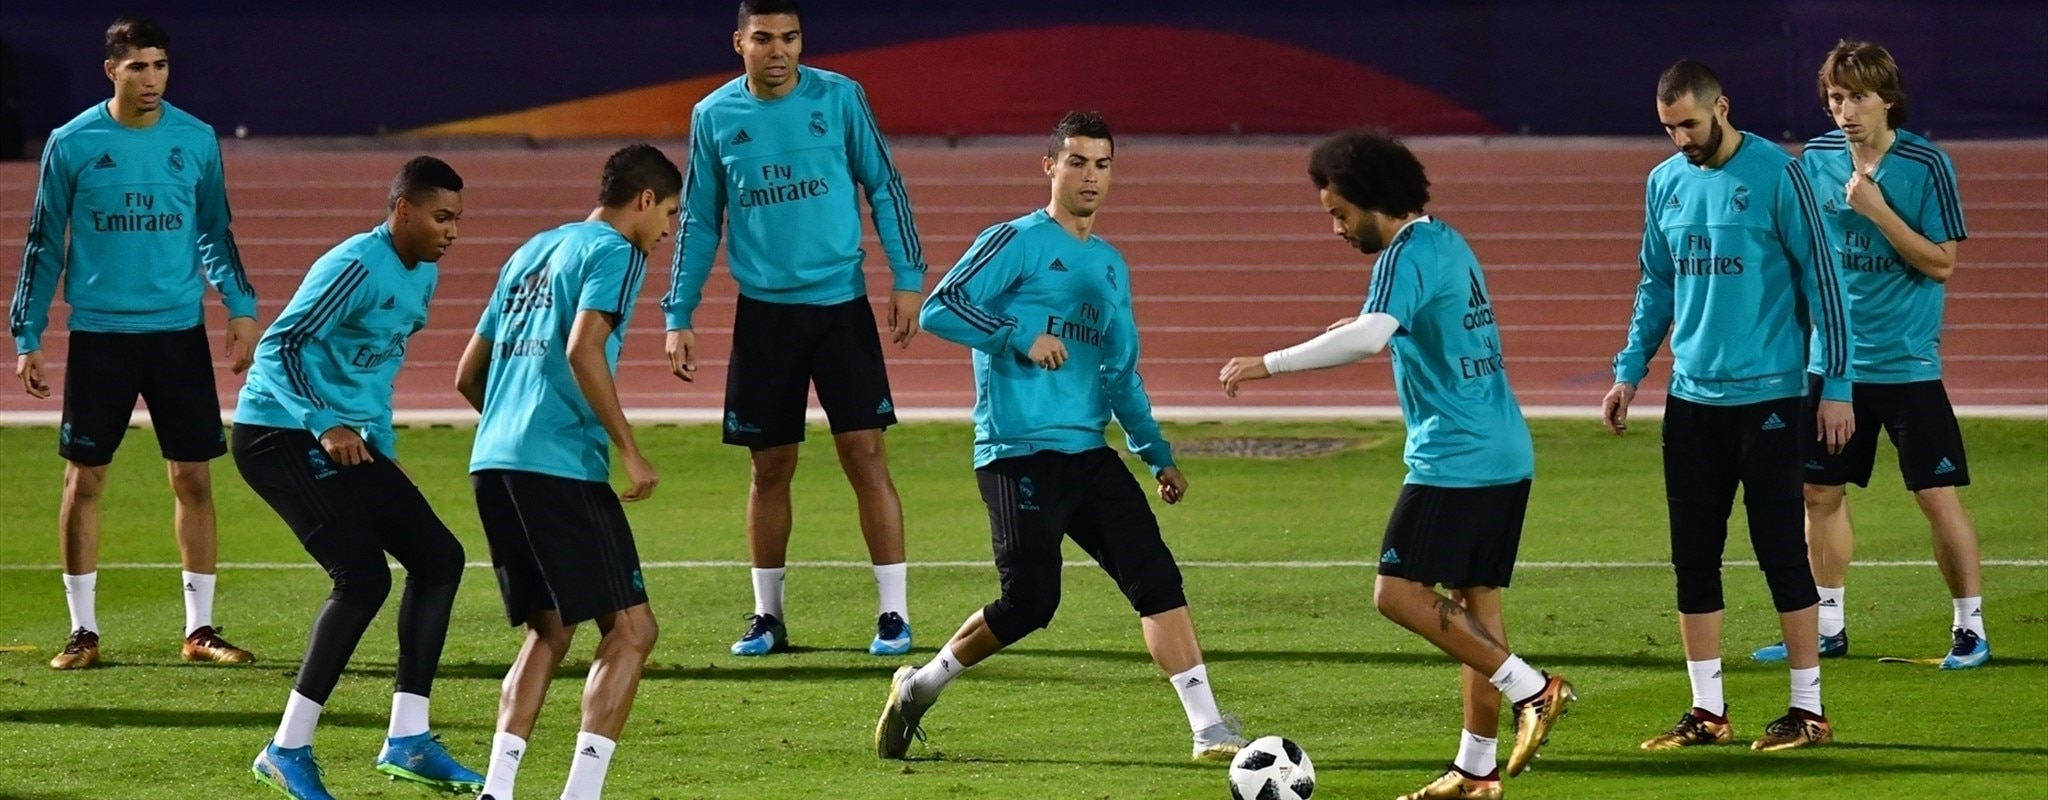 Club World Cup final preview: Madrid eye landmark win